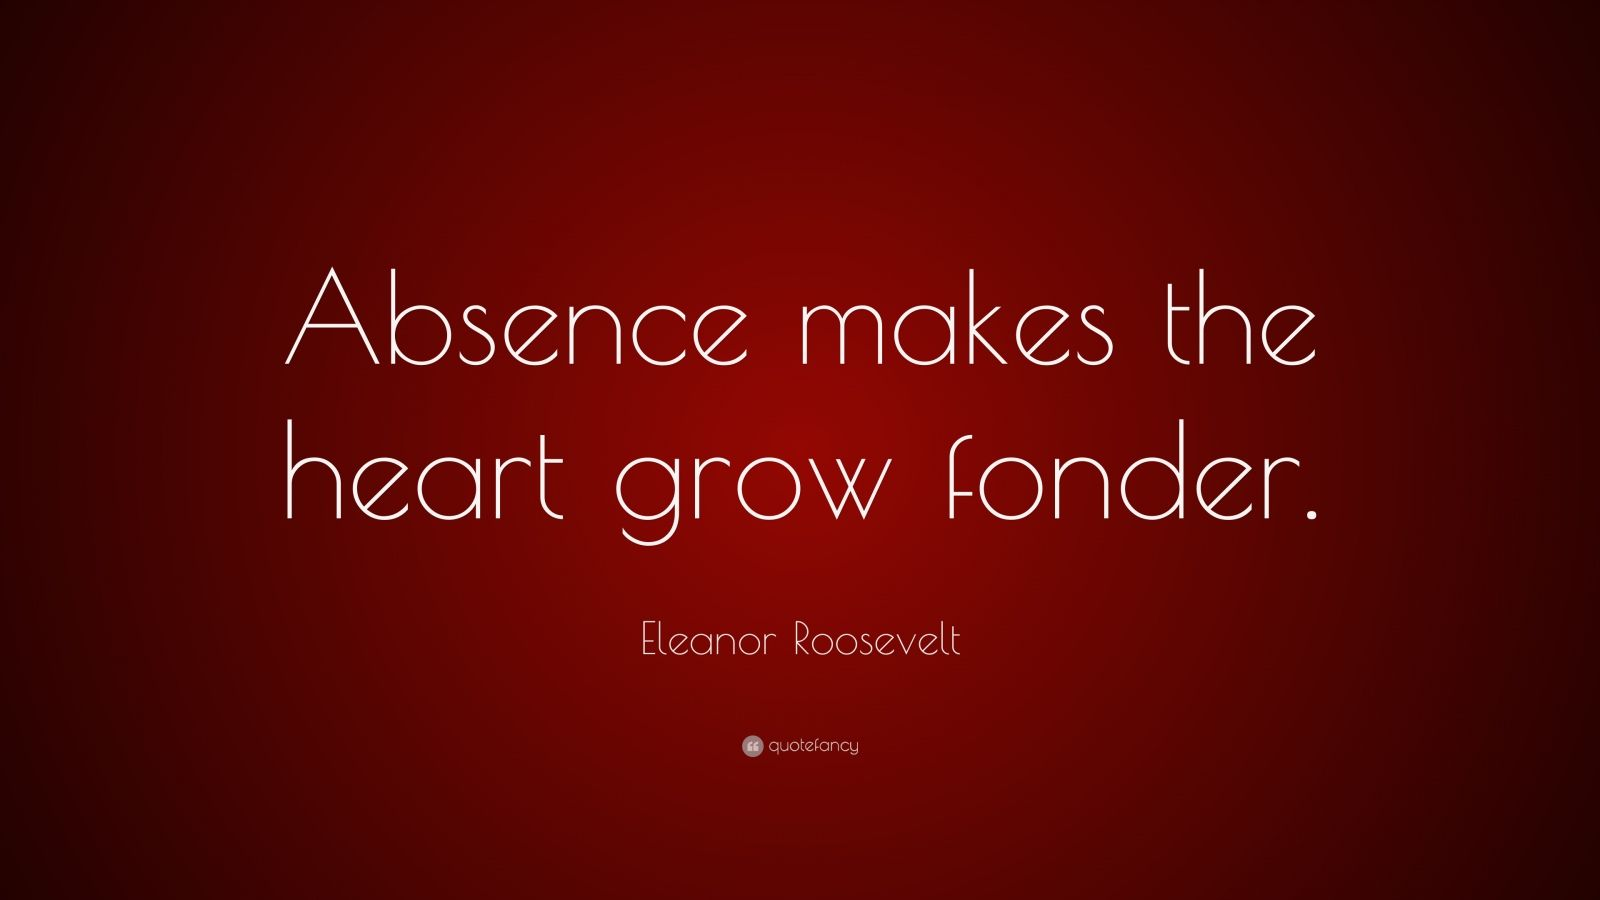 you make my heart grow fonder The origin of absence makes the heart grow fonder is unknown the phrase was first published in 1602 as the start of a poem from an anonymous author.